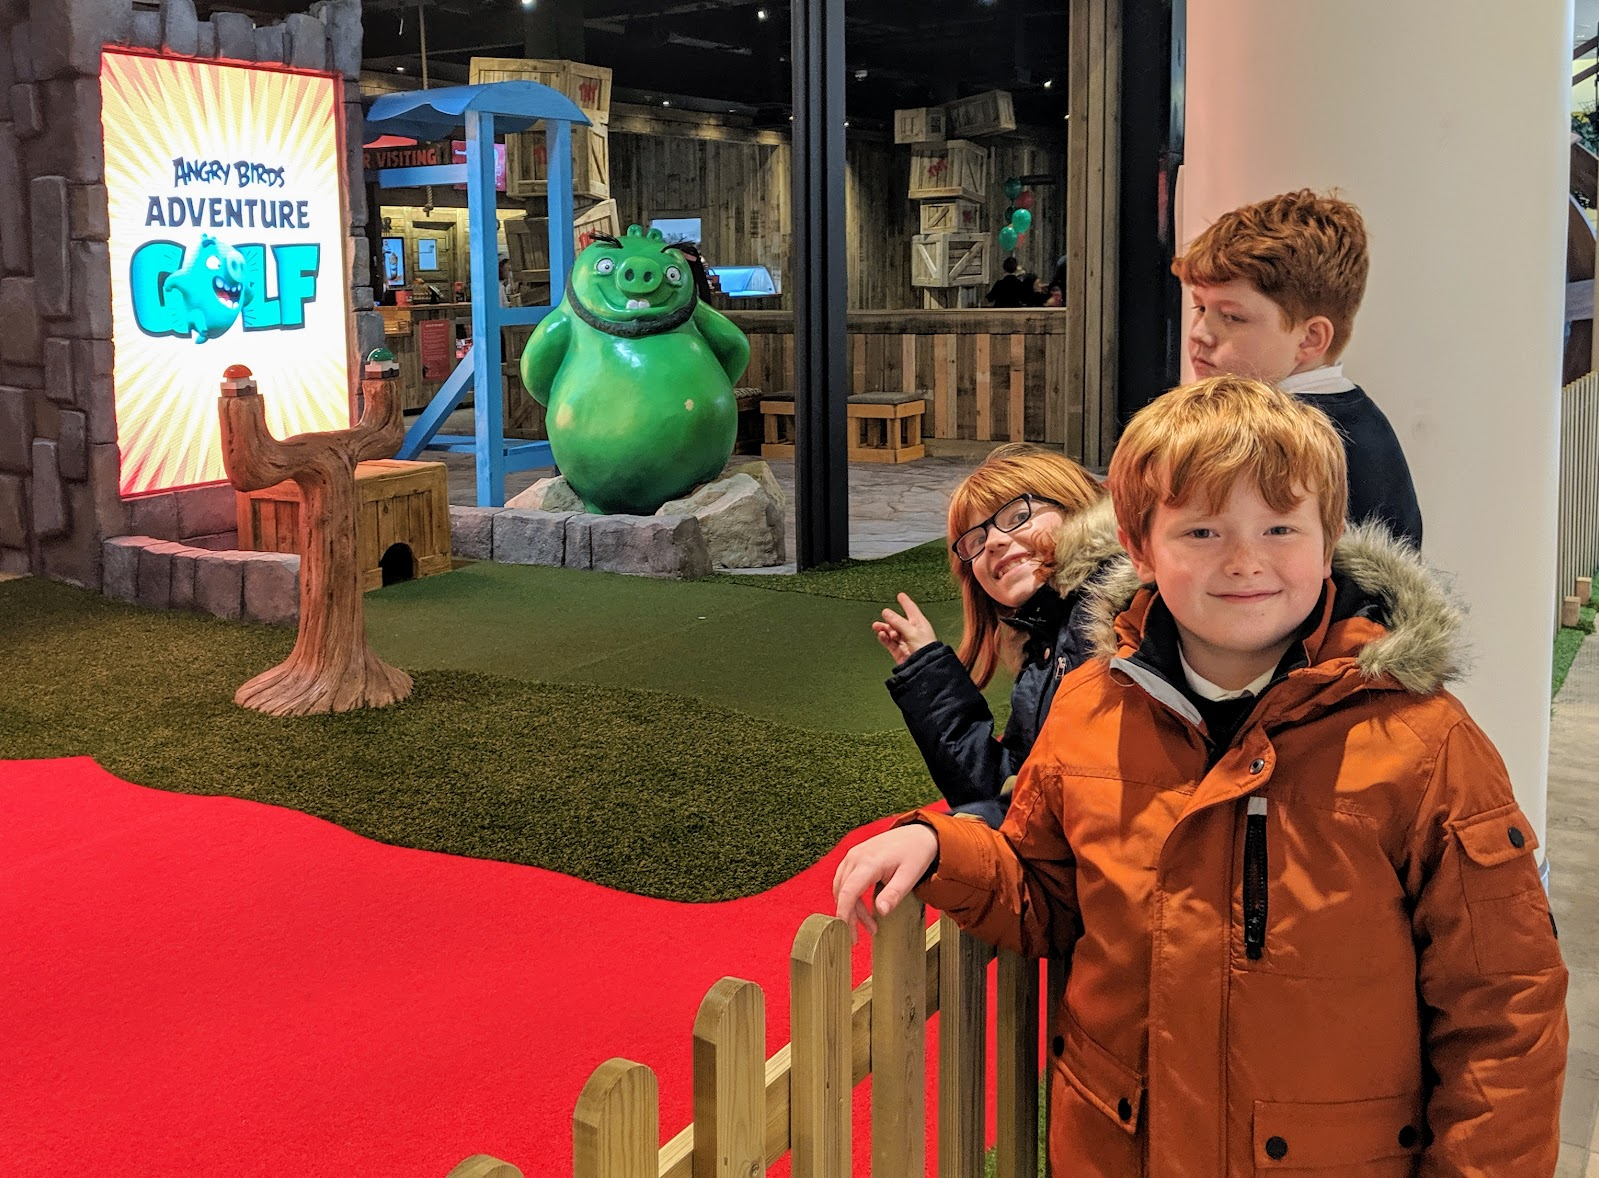 Angry Birds Golf Location and Entrance -Angry Birds Adventure Golf Review at intu Metrocentre | Opening, Prices & Food